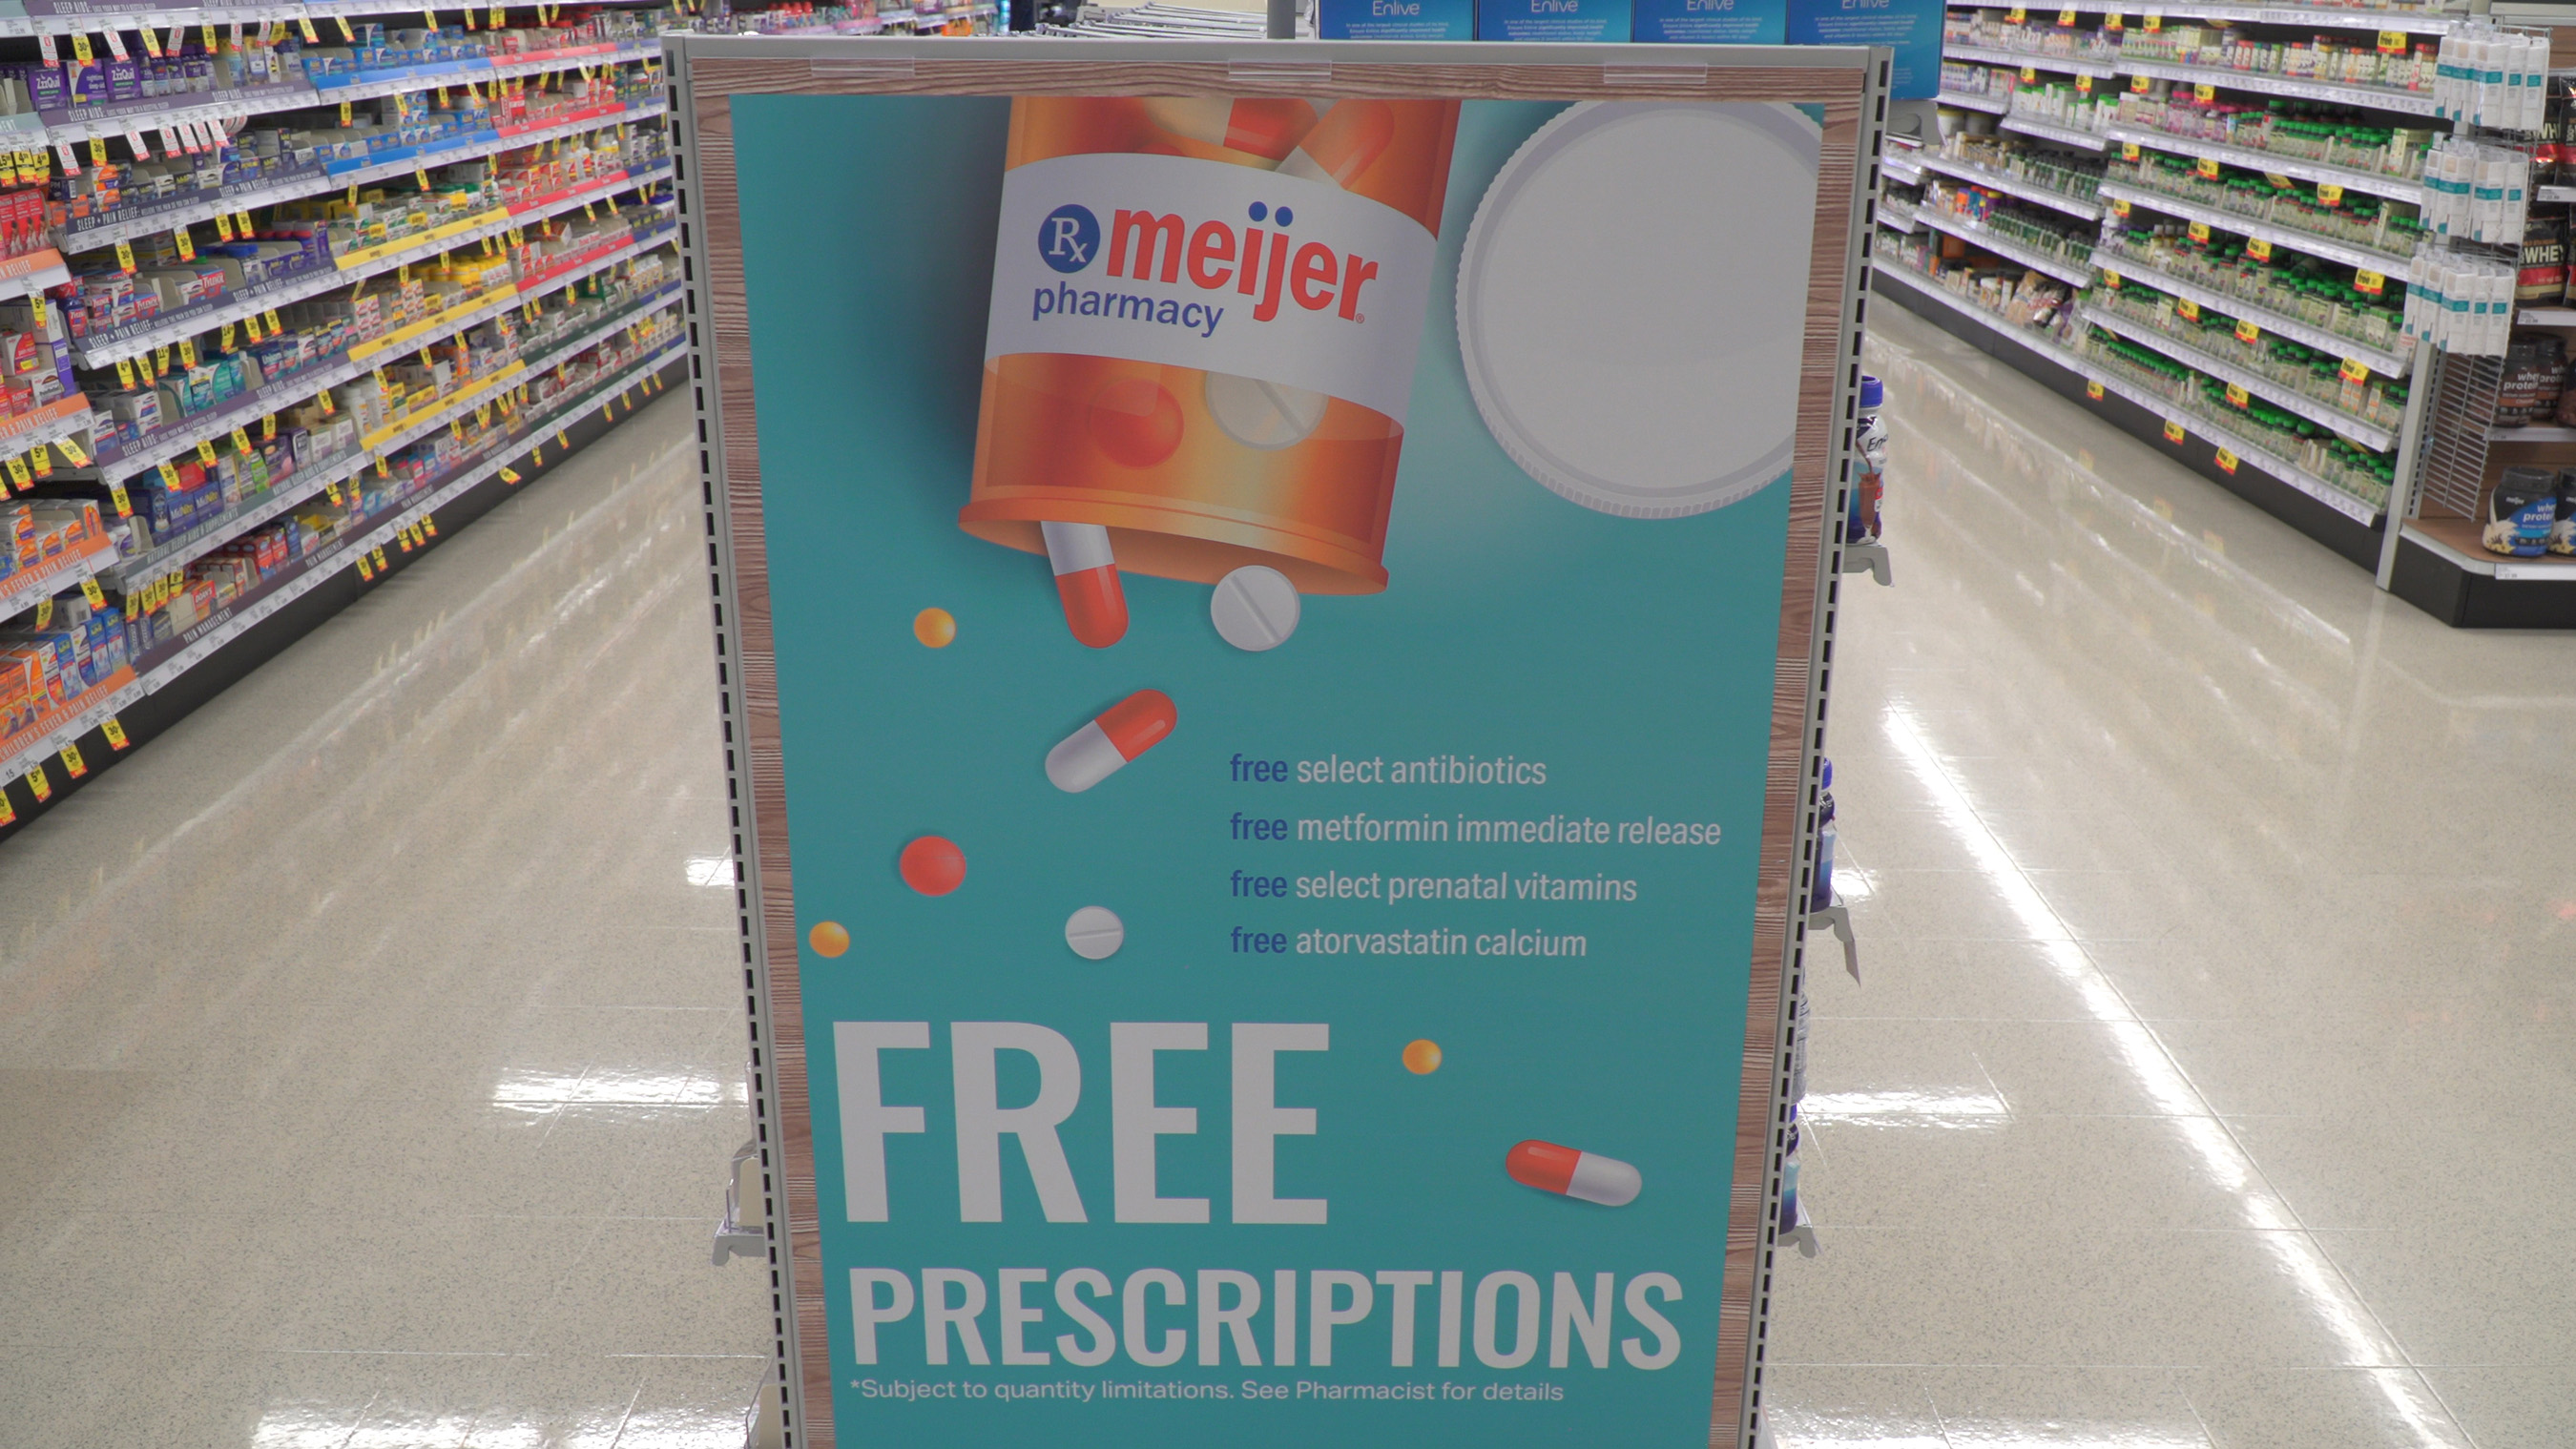 Meijer established the Free Prescription Drug Program to help lower healthcare costs for families by focusing on antibiotic medications most often filled for children. Through the years, as high costs of prescription drugs continued to rise, the program added other medications as well.